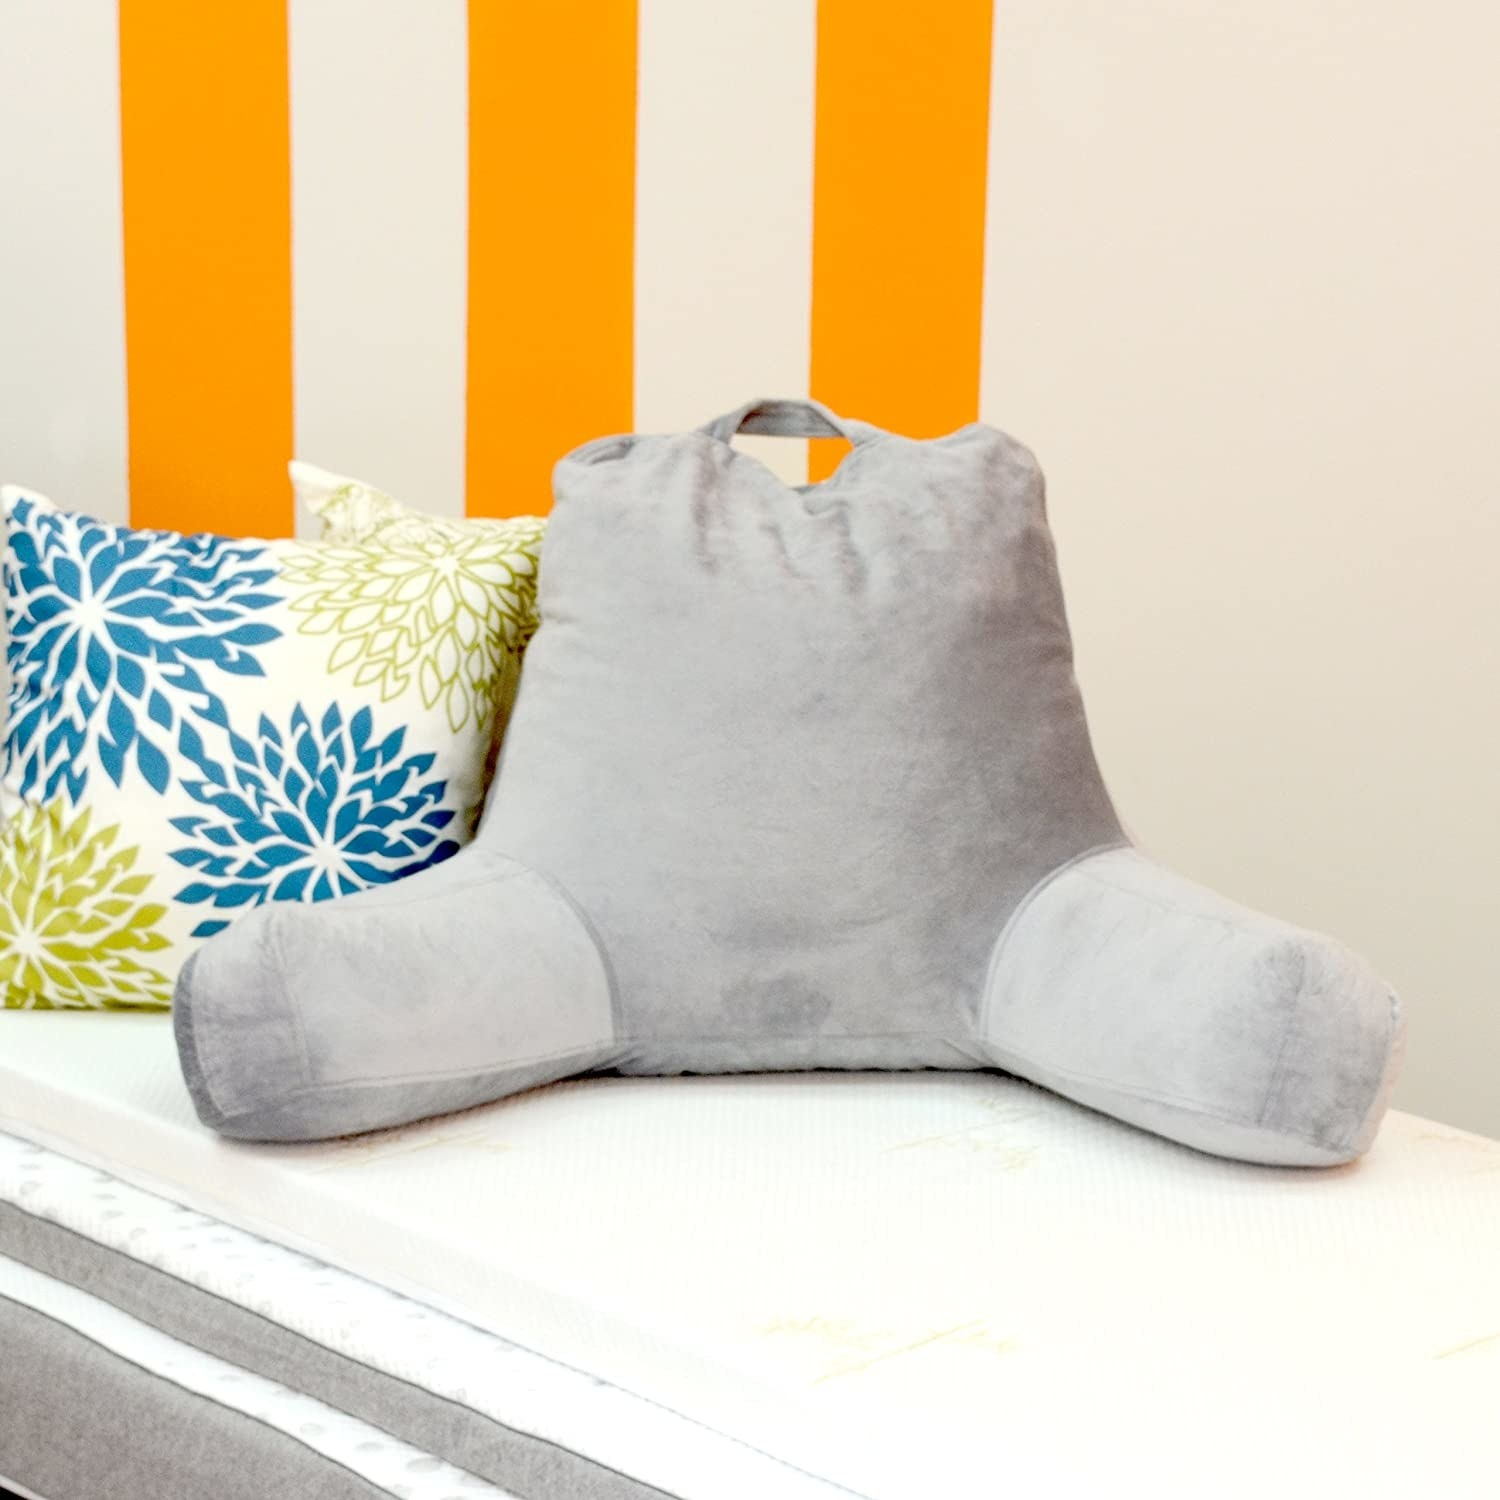 the pillow on a bench